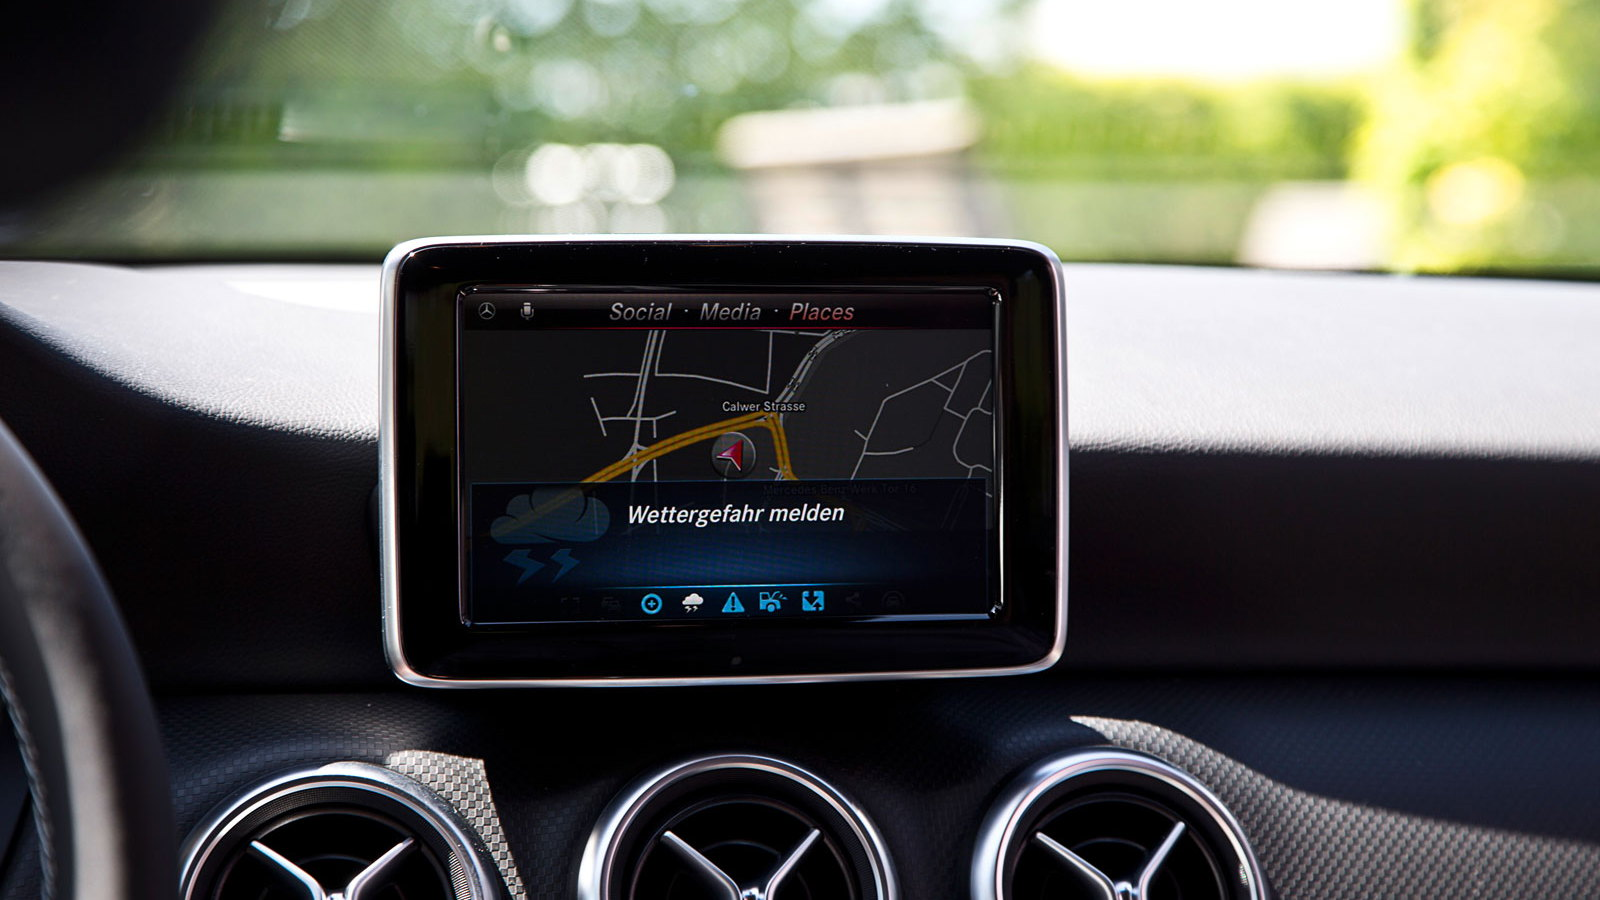 Mercedes-Benz Car-2-Object communication in action